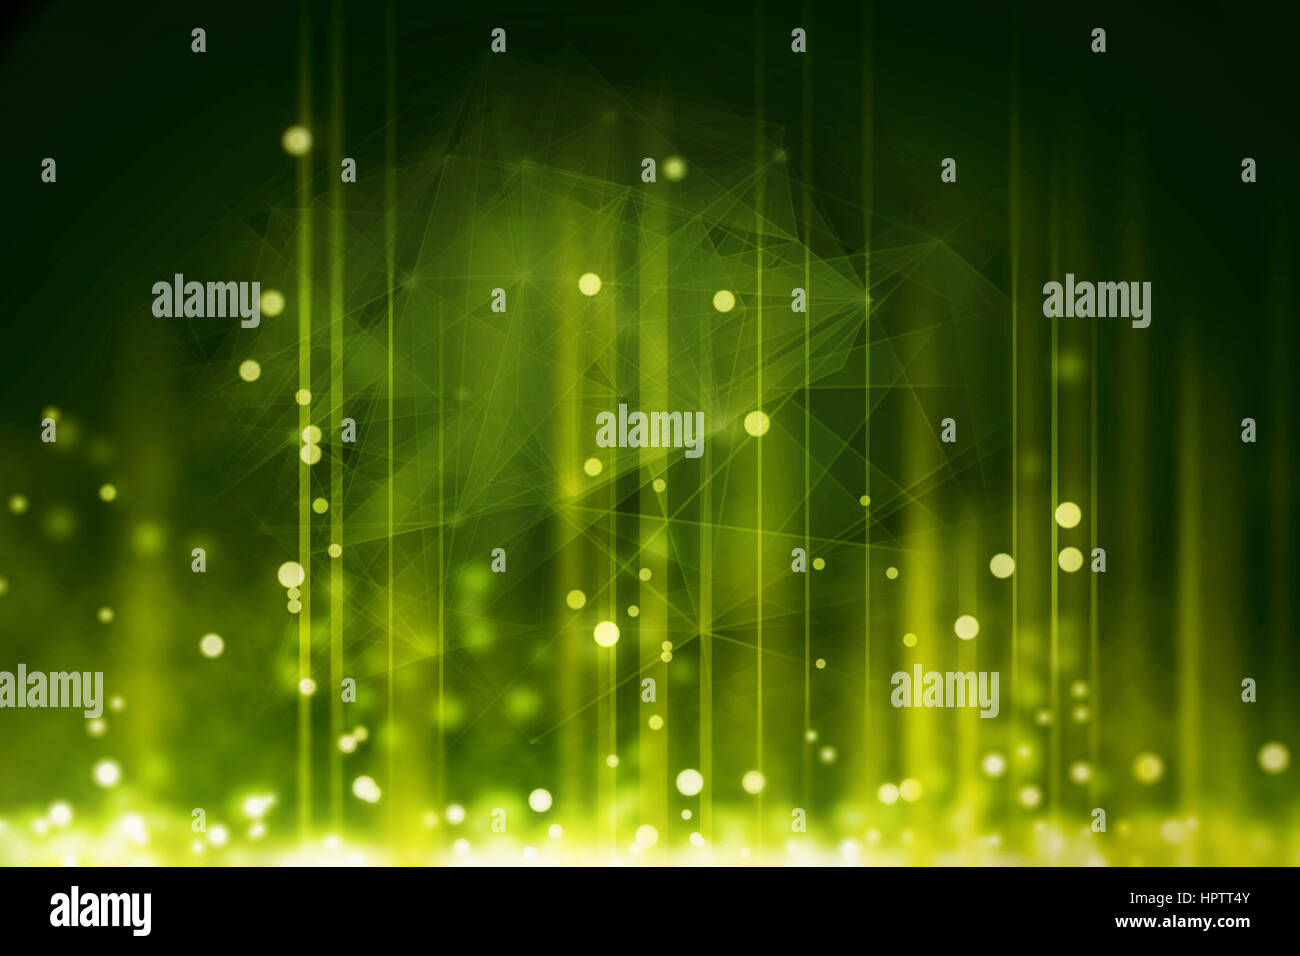 green matrix code background - Stock Image